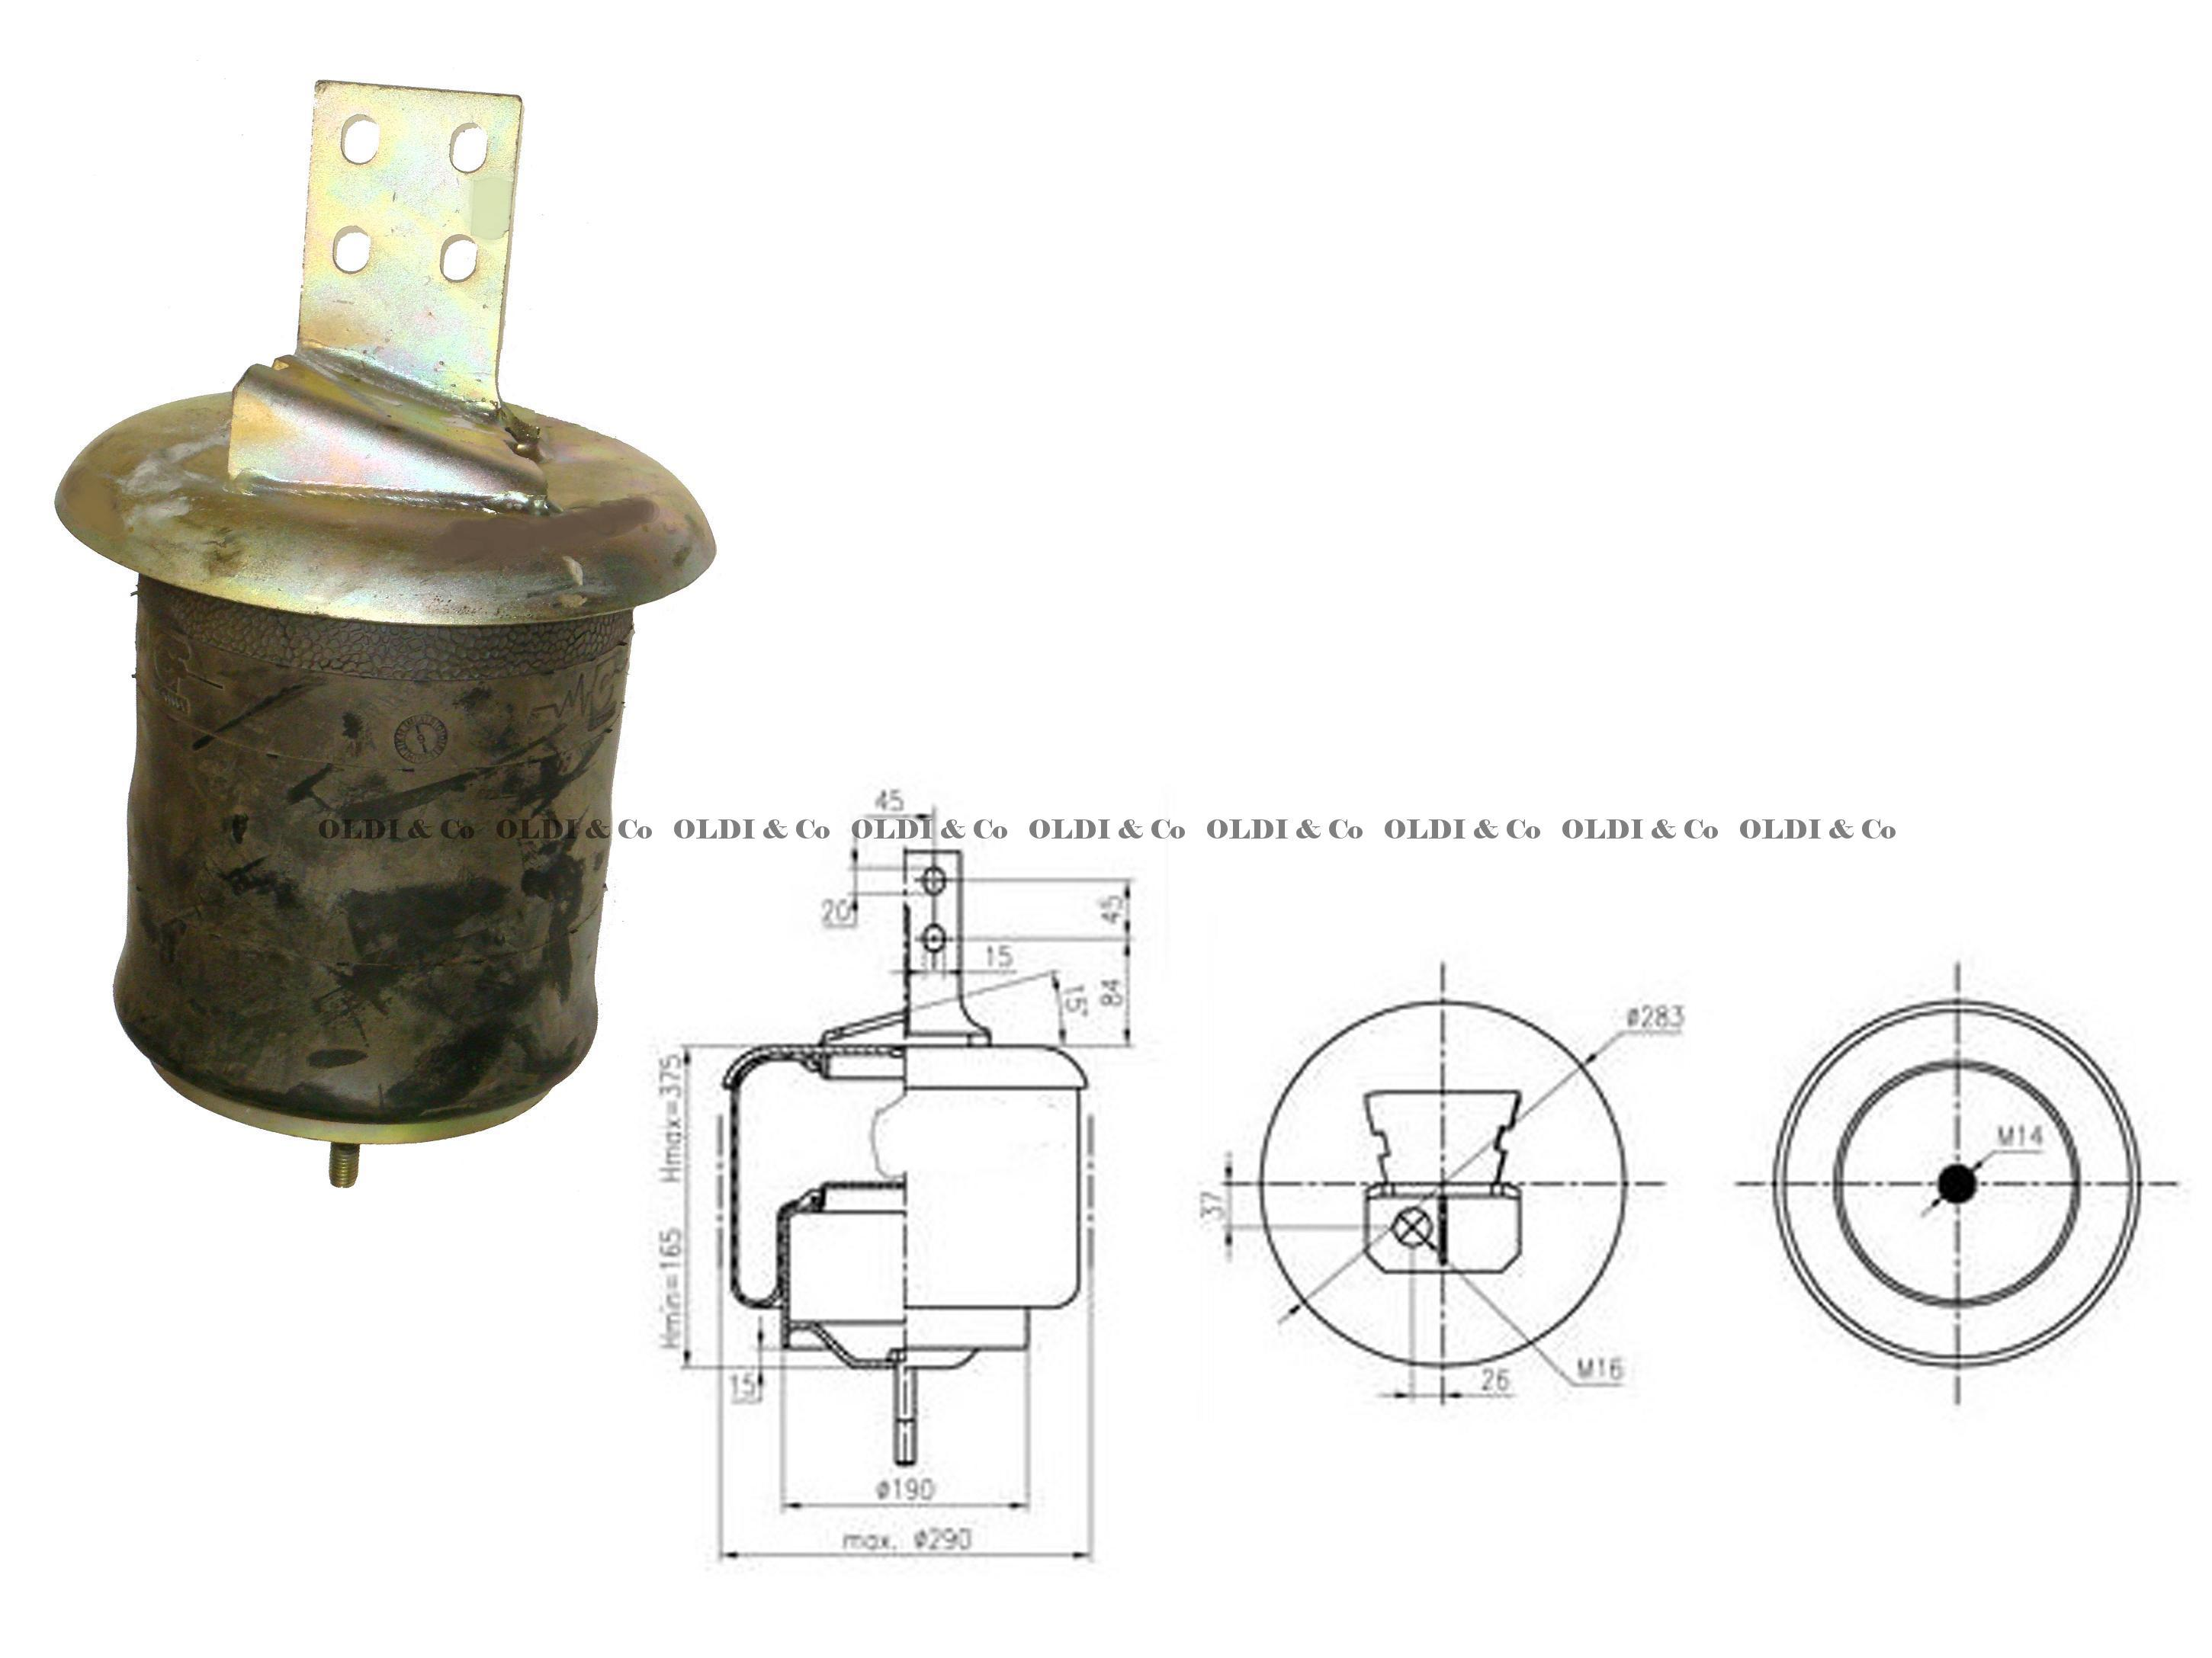 1400917502 Airsprings Air Spring With Flange Gaisa Iveco Engine Fuel System Diagrams Spilveni Un